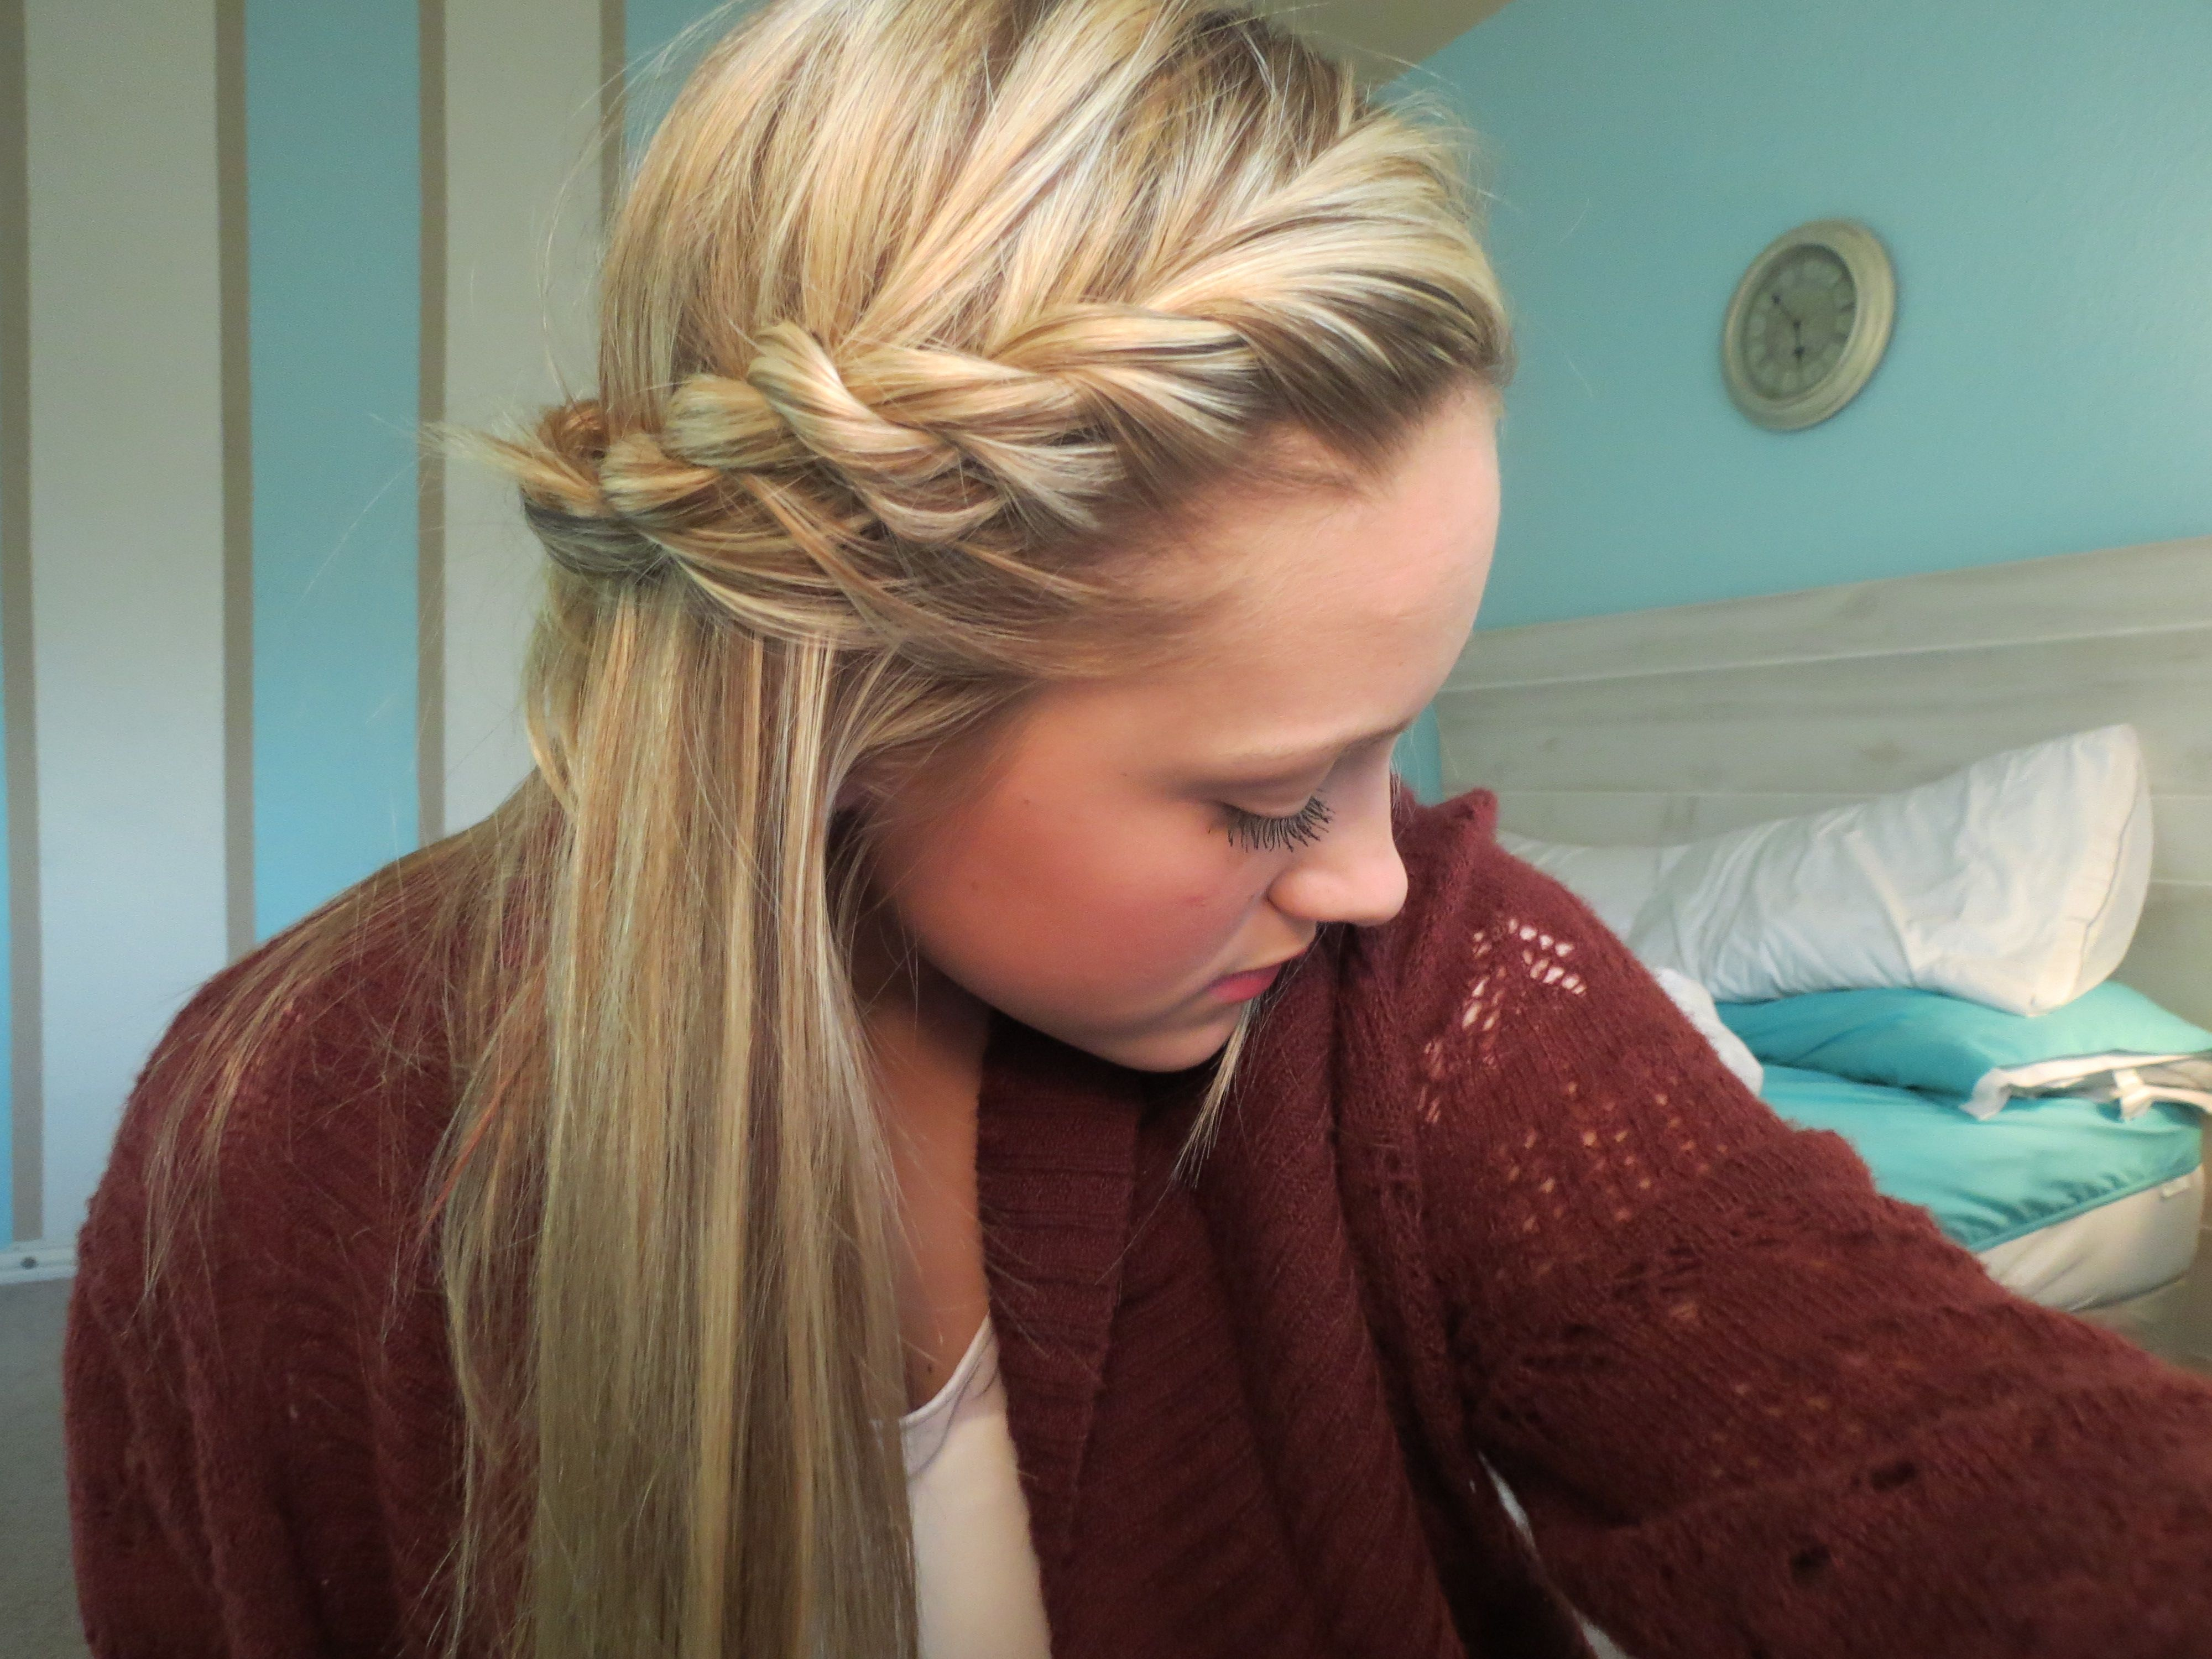 Buy Twisted rihanna-inspired rope braid tutorial picture trends